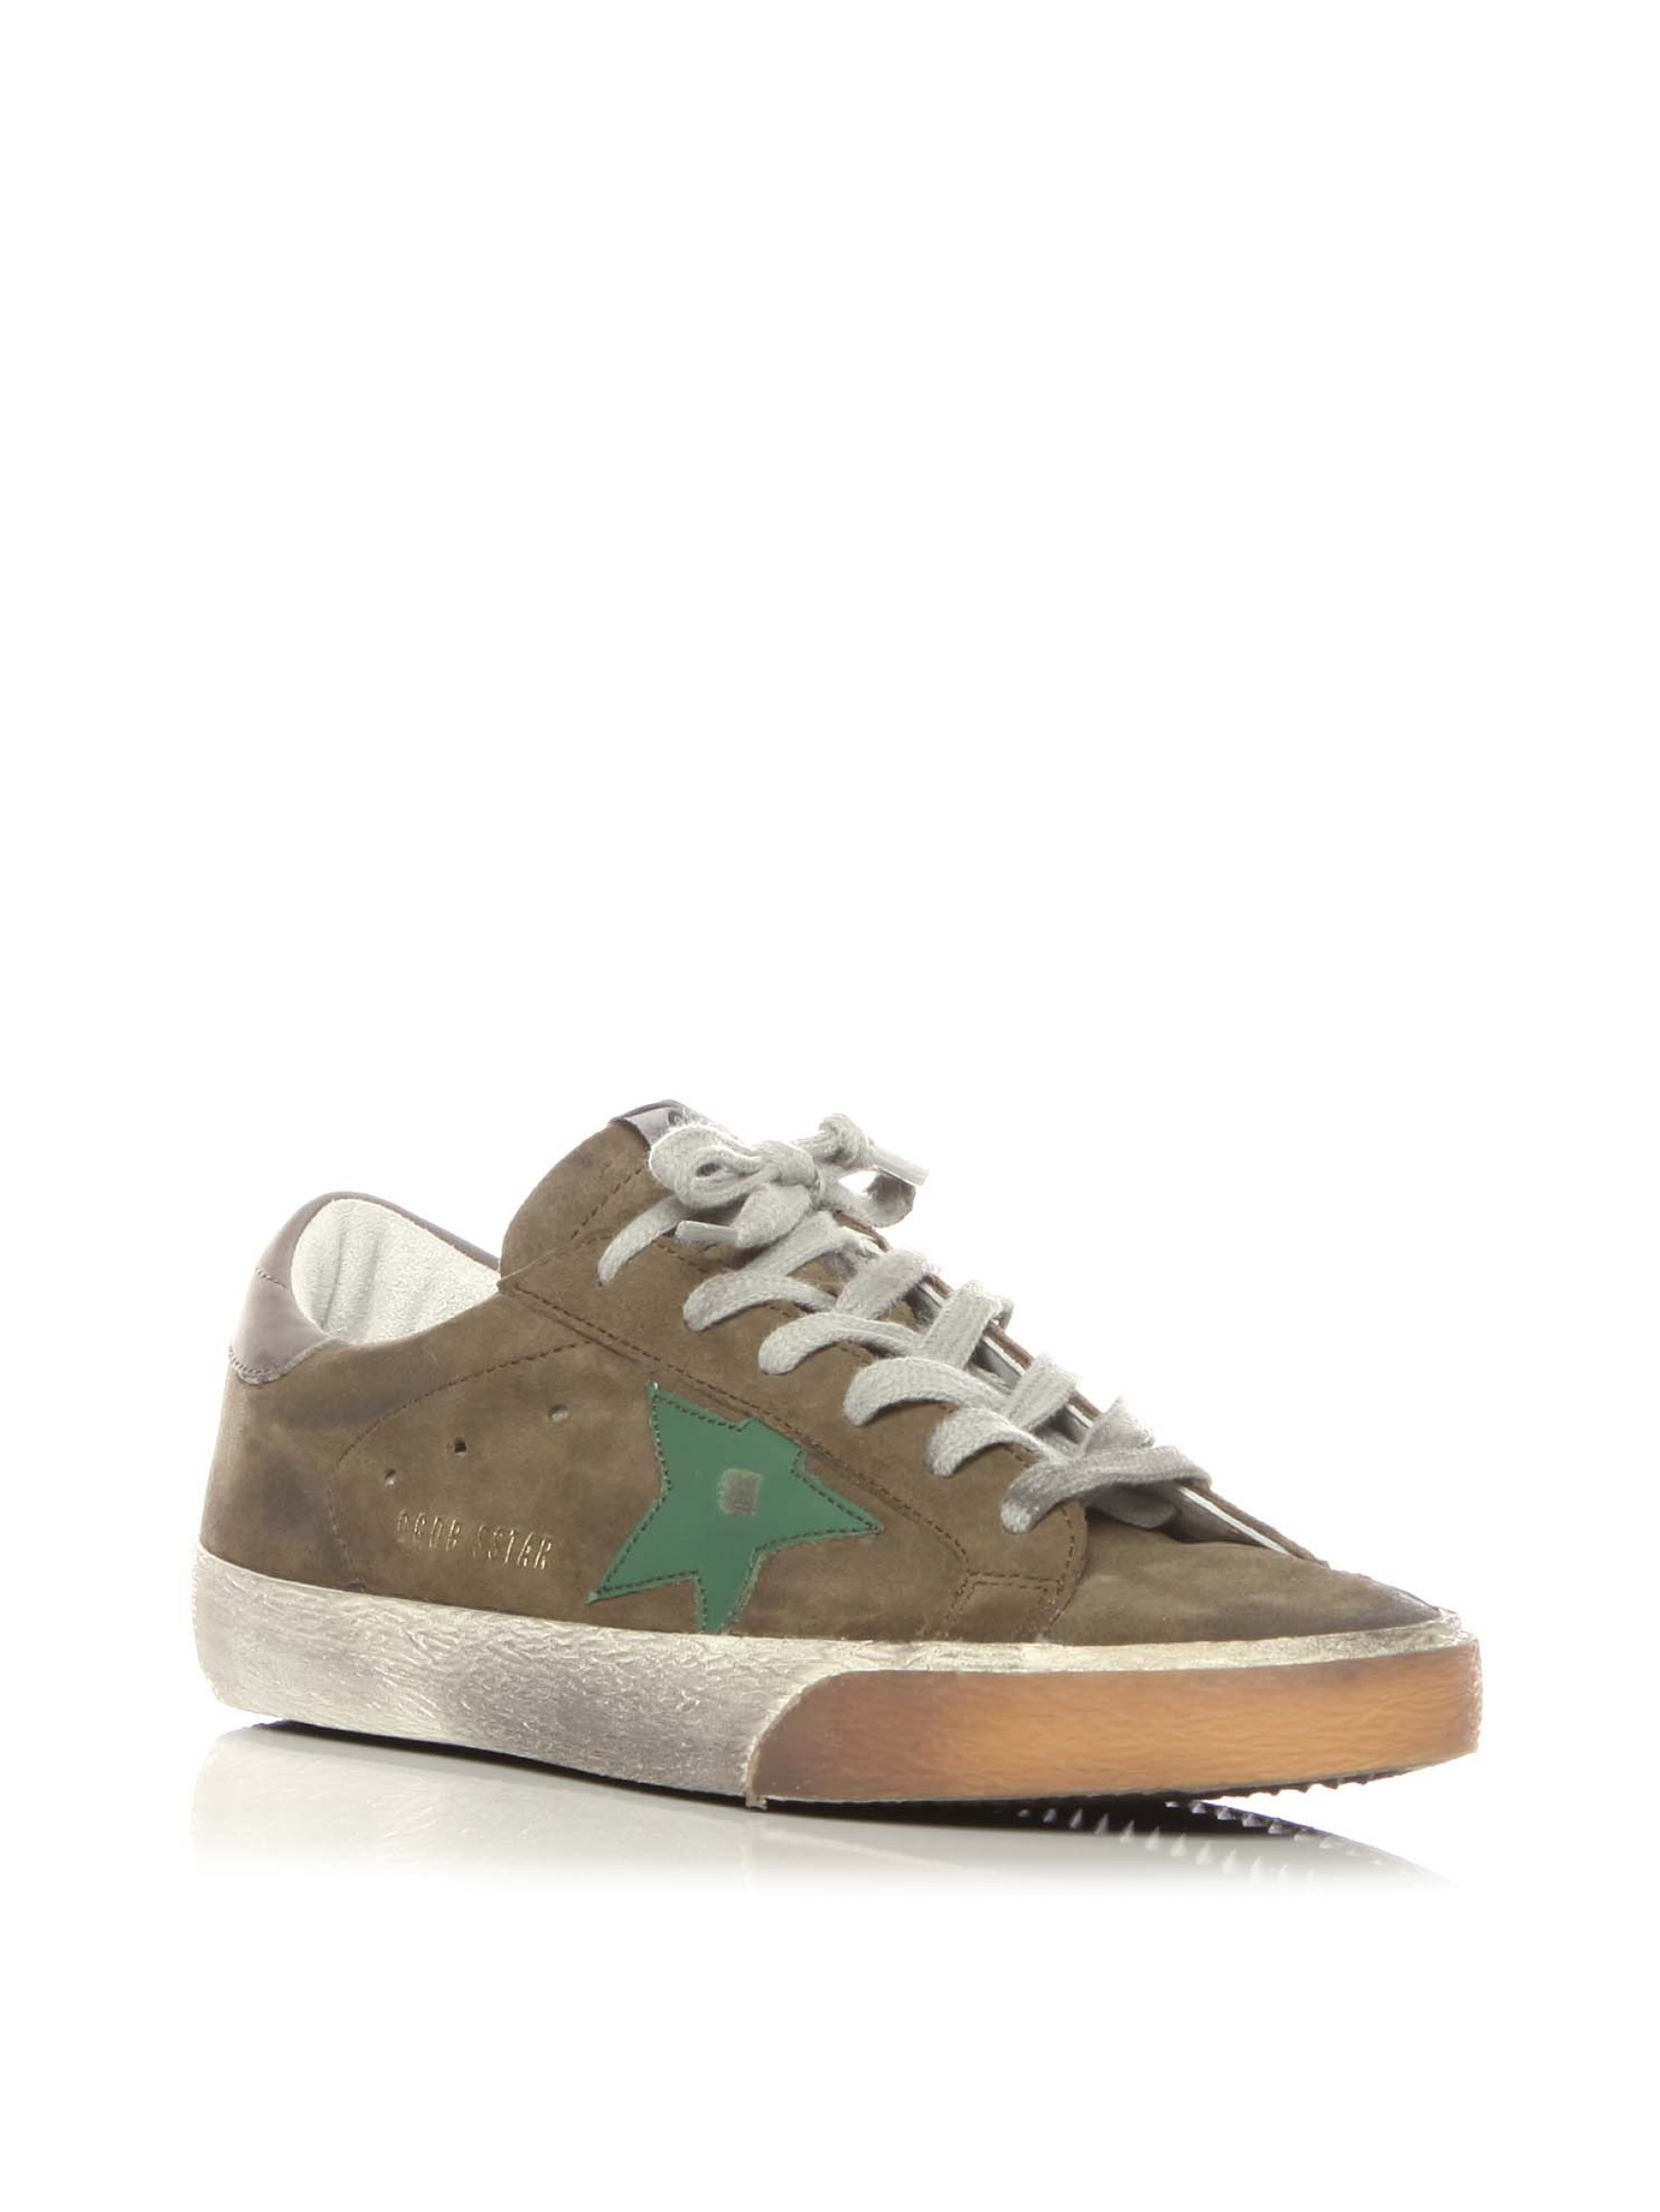 golden goose deluxe brand superstar suede low top sneakers in green lyst. Black Bedroom Furniture Sets. Home Design Ideas